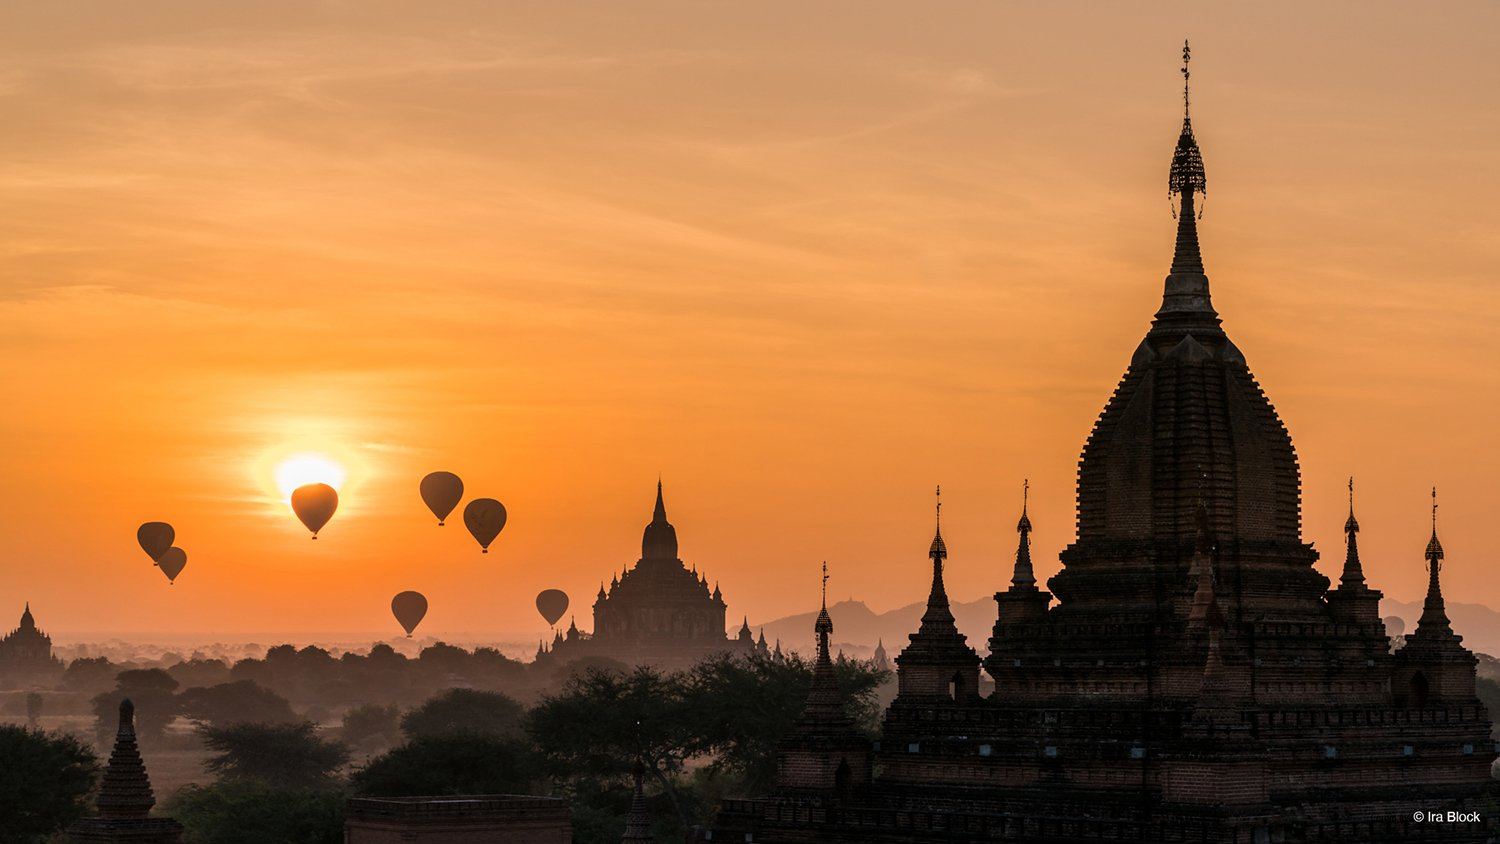 How I Made It: The Story Behind Ira Block's Photo of Myanmar